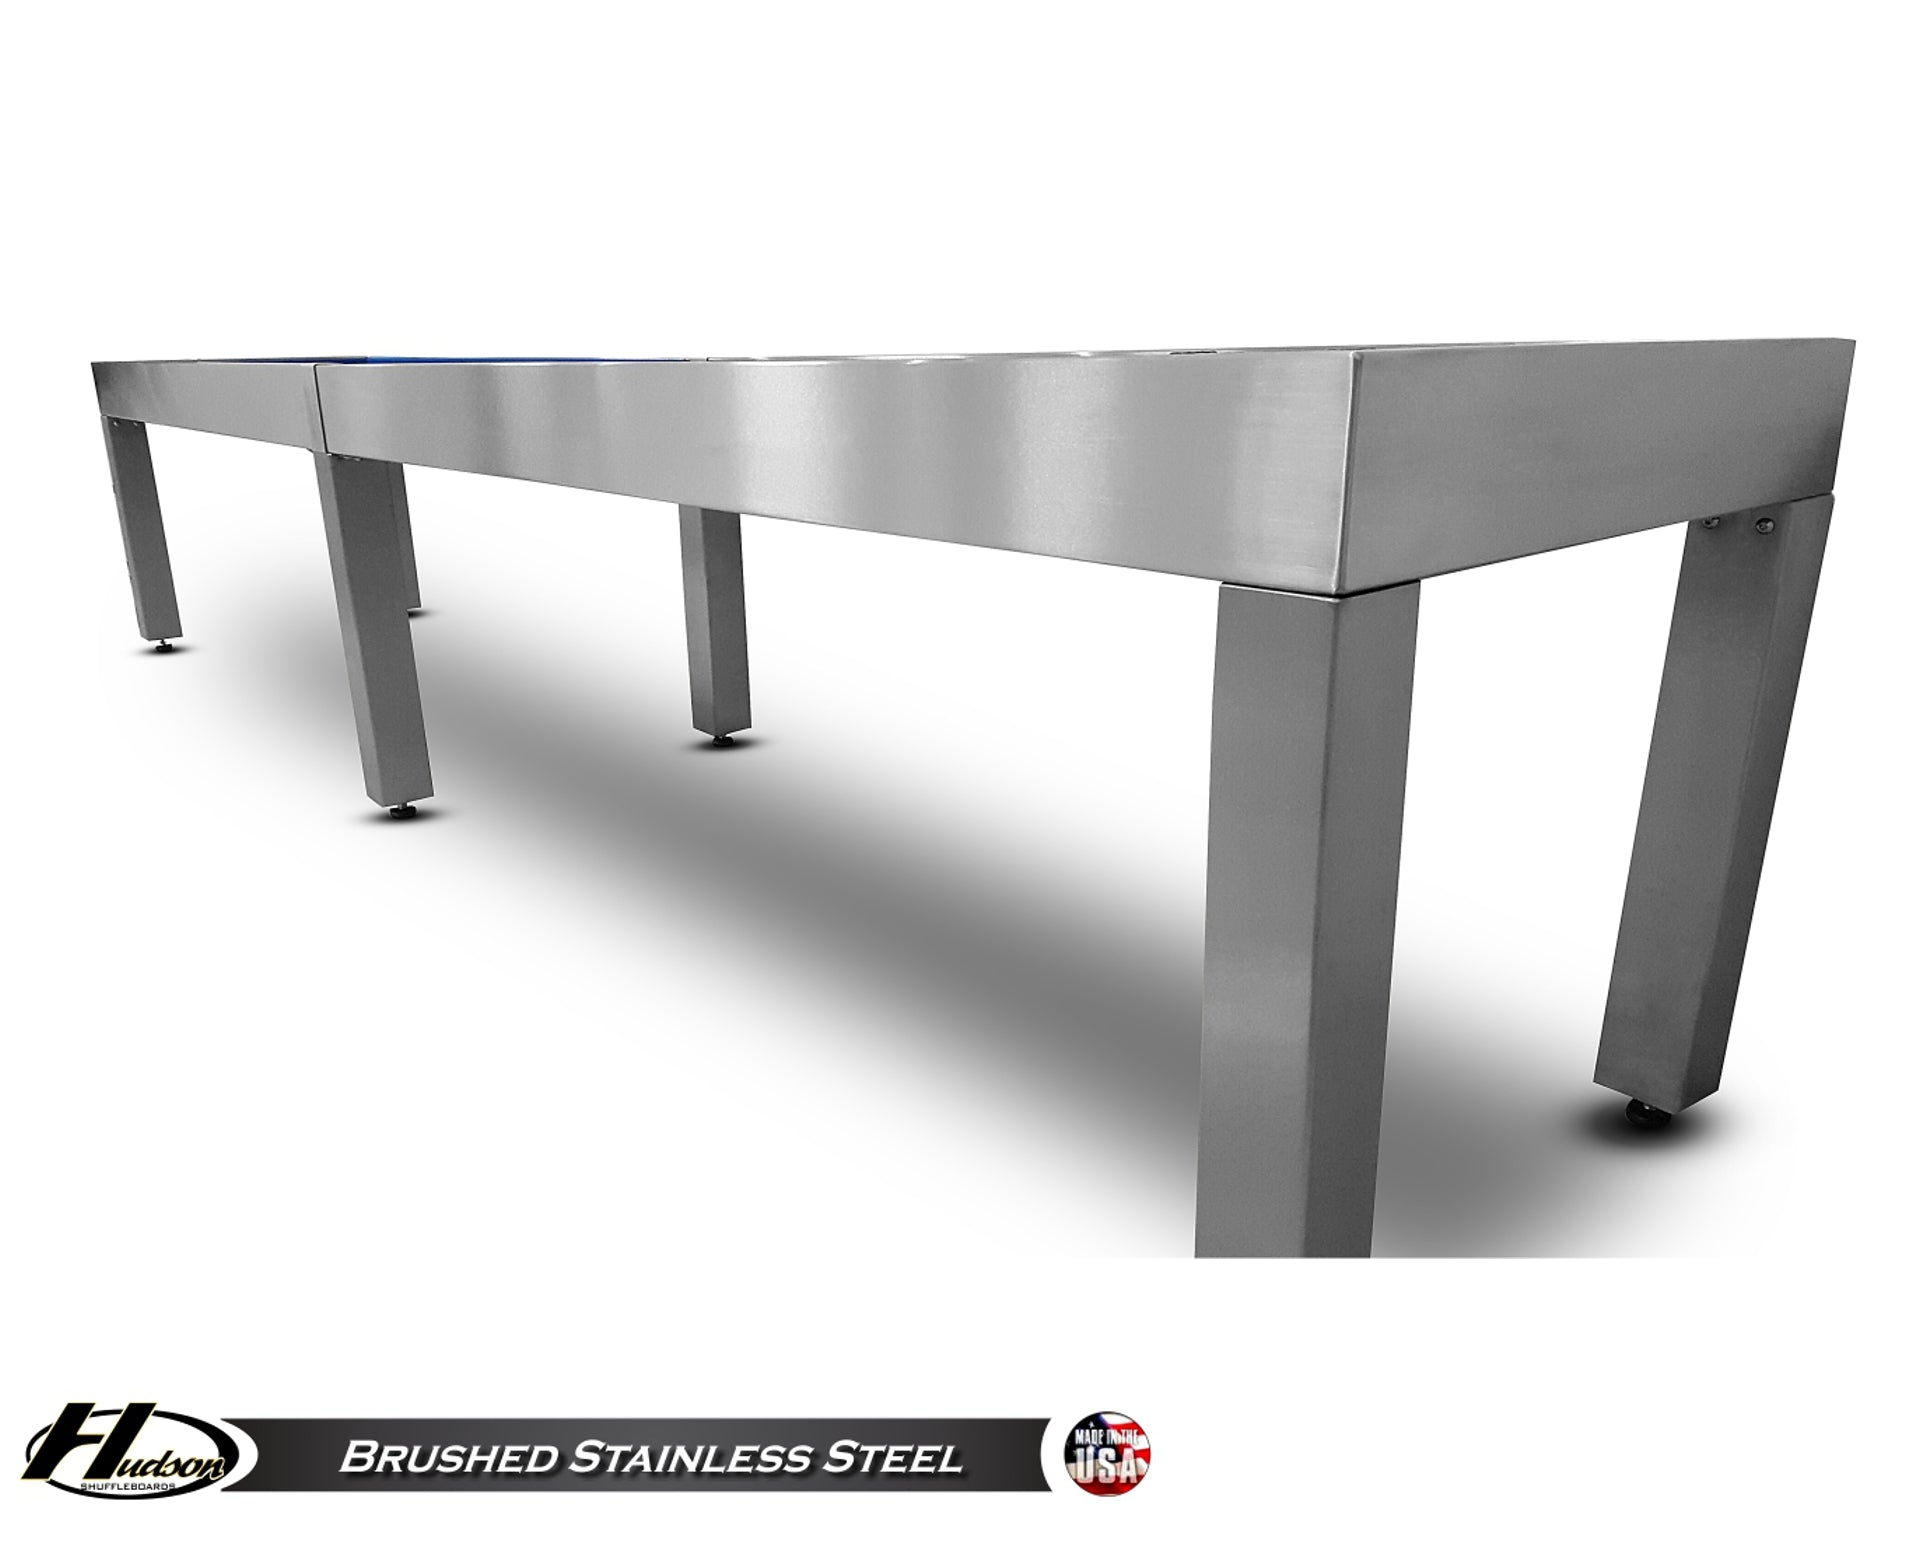 Brushed Stainless Steel Shuffleboard Table